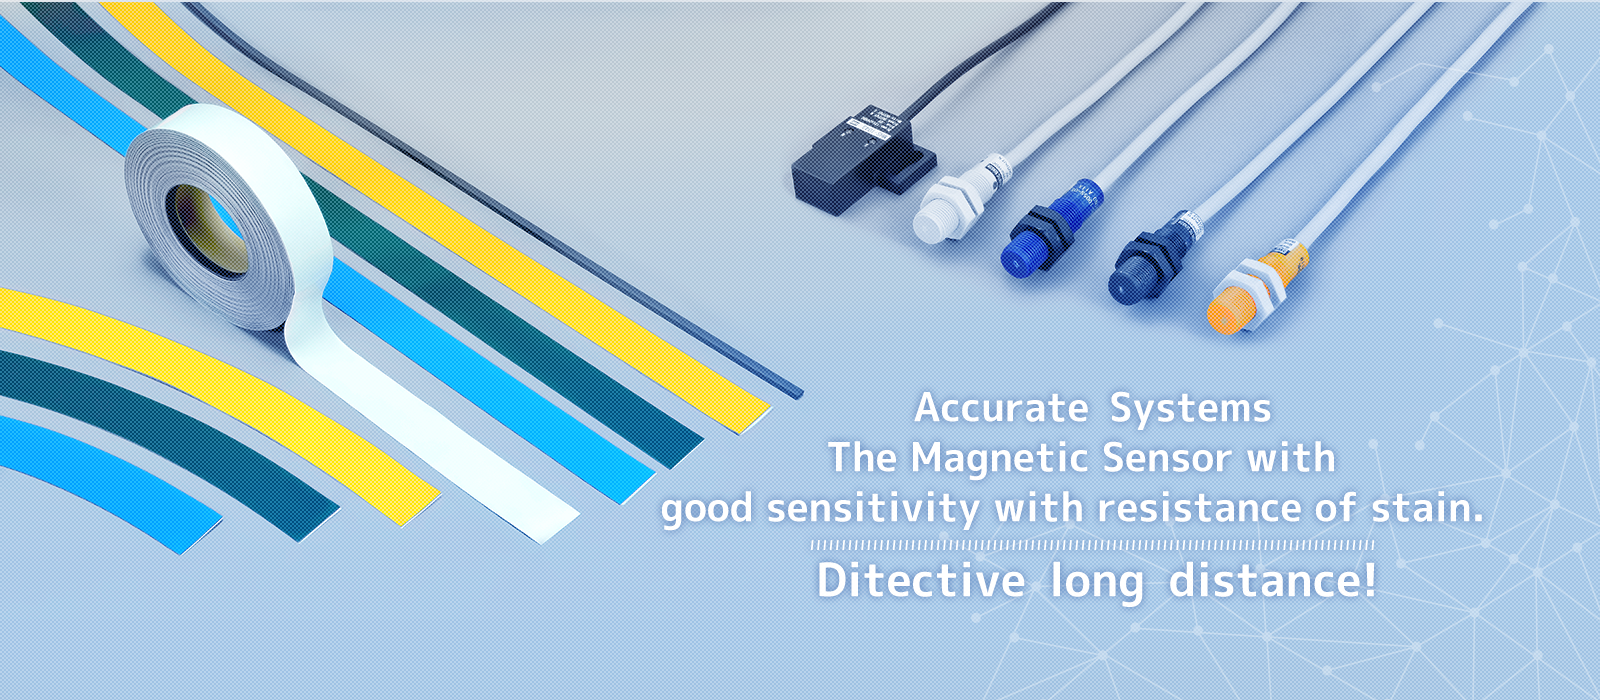 Accurate Systems pioneers future possibilities with sensors.